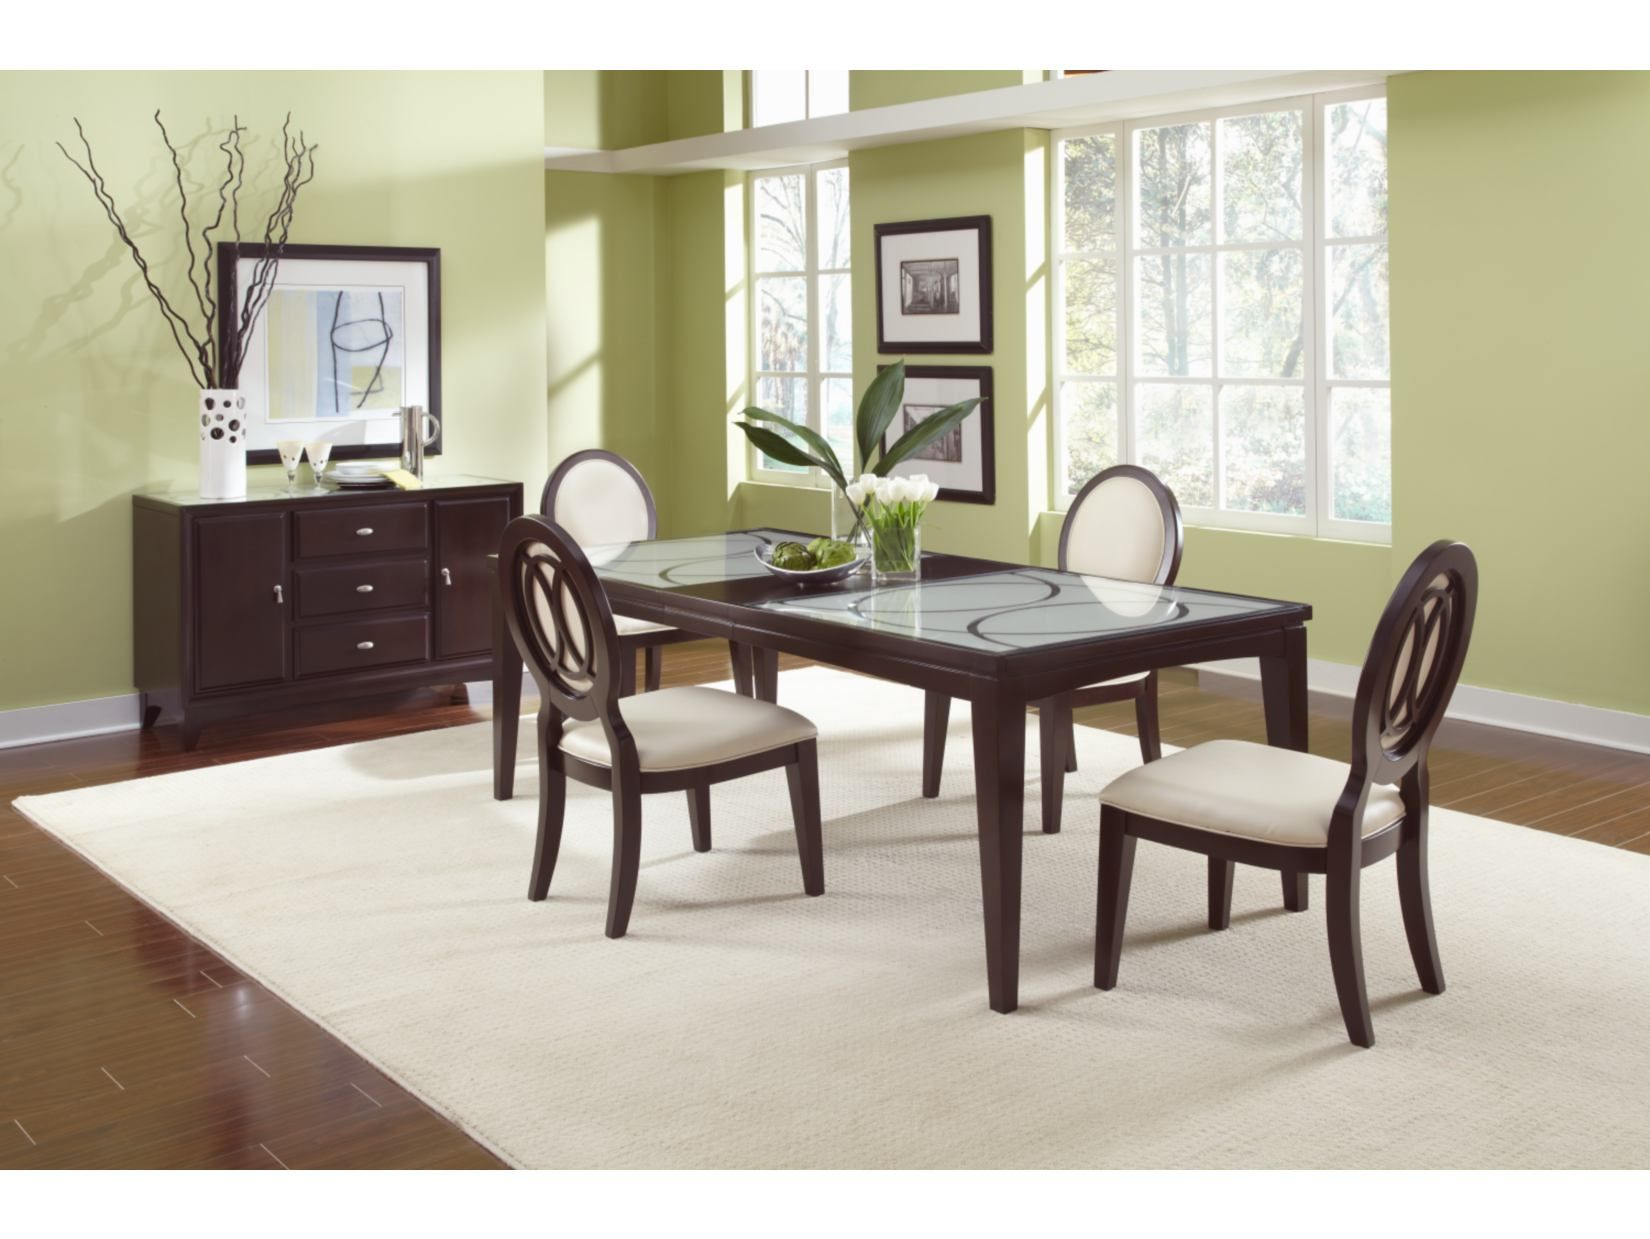 Cosmo Dining Table  Value City Furniture Same Dining Table Used Prepossessing Value City Dining Room Sets 2018